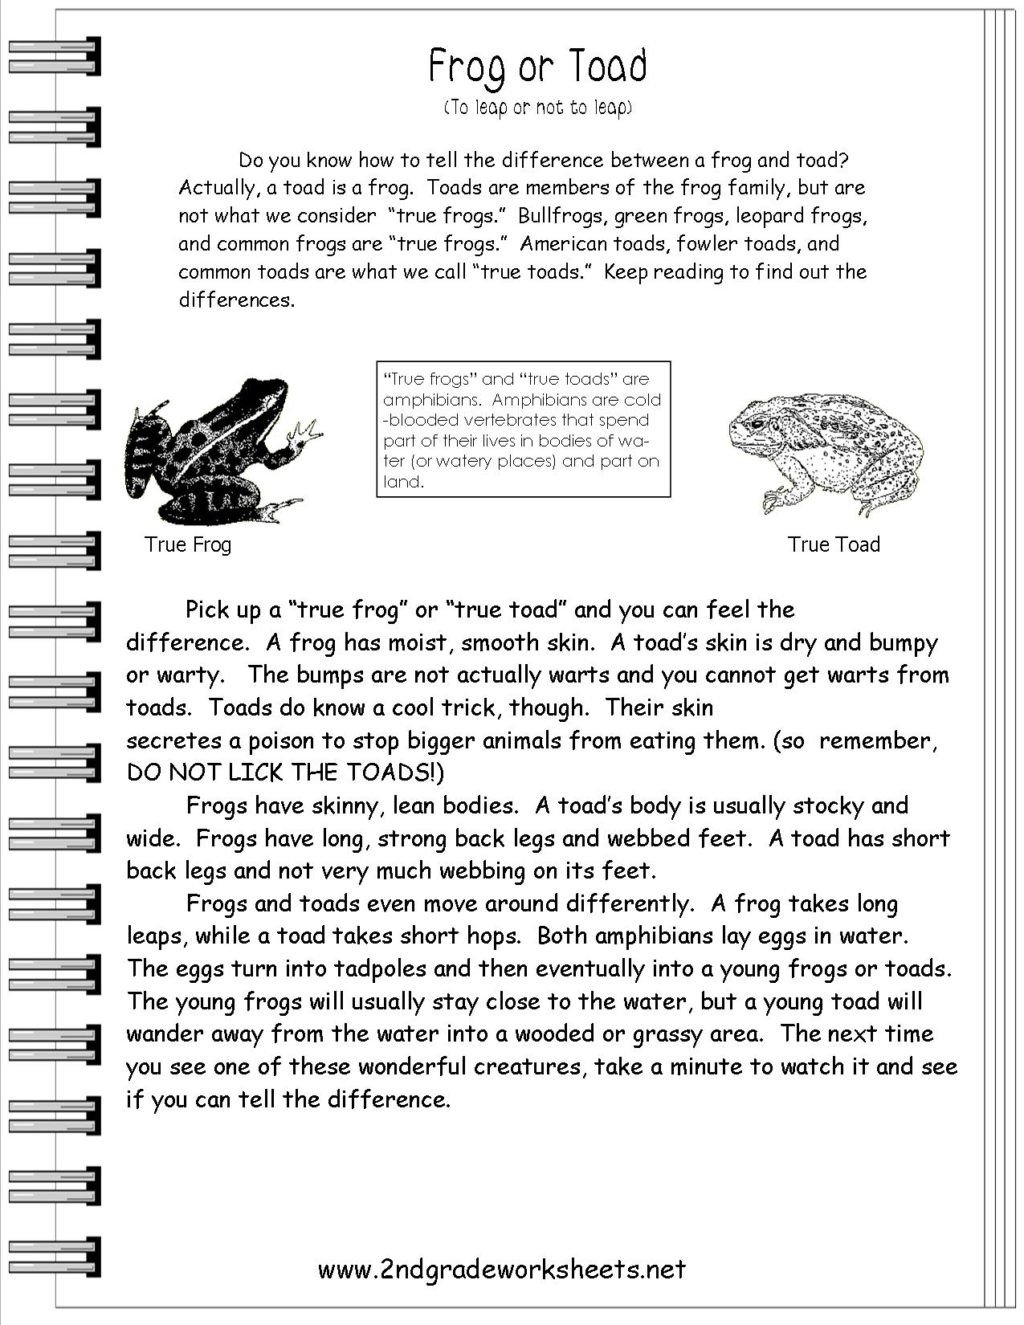 frogortoad 2nd grade passage worksheet second with questions aboutbeth cady stanton ac plishments free reading 1024x1325